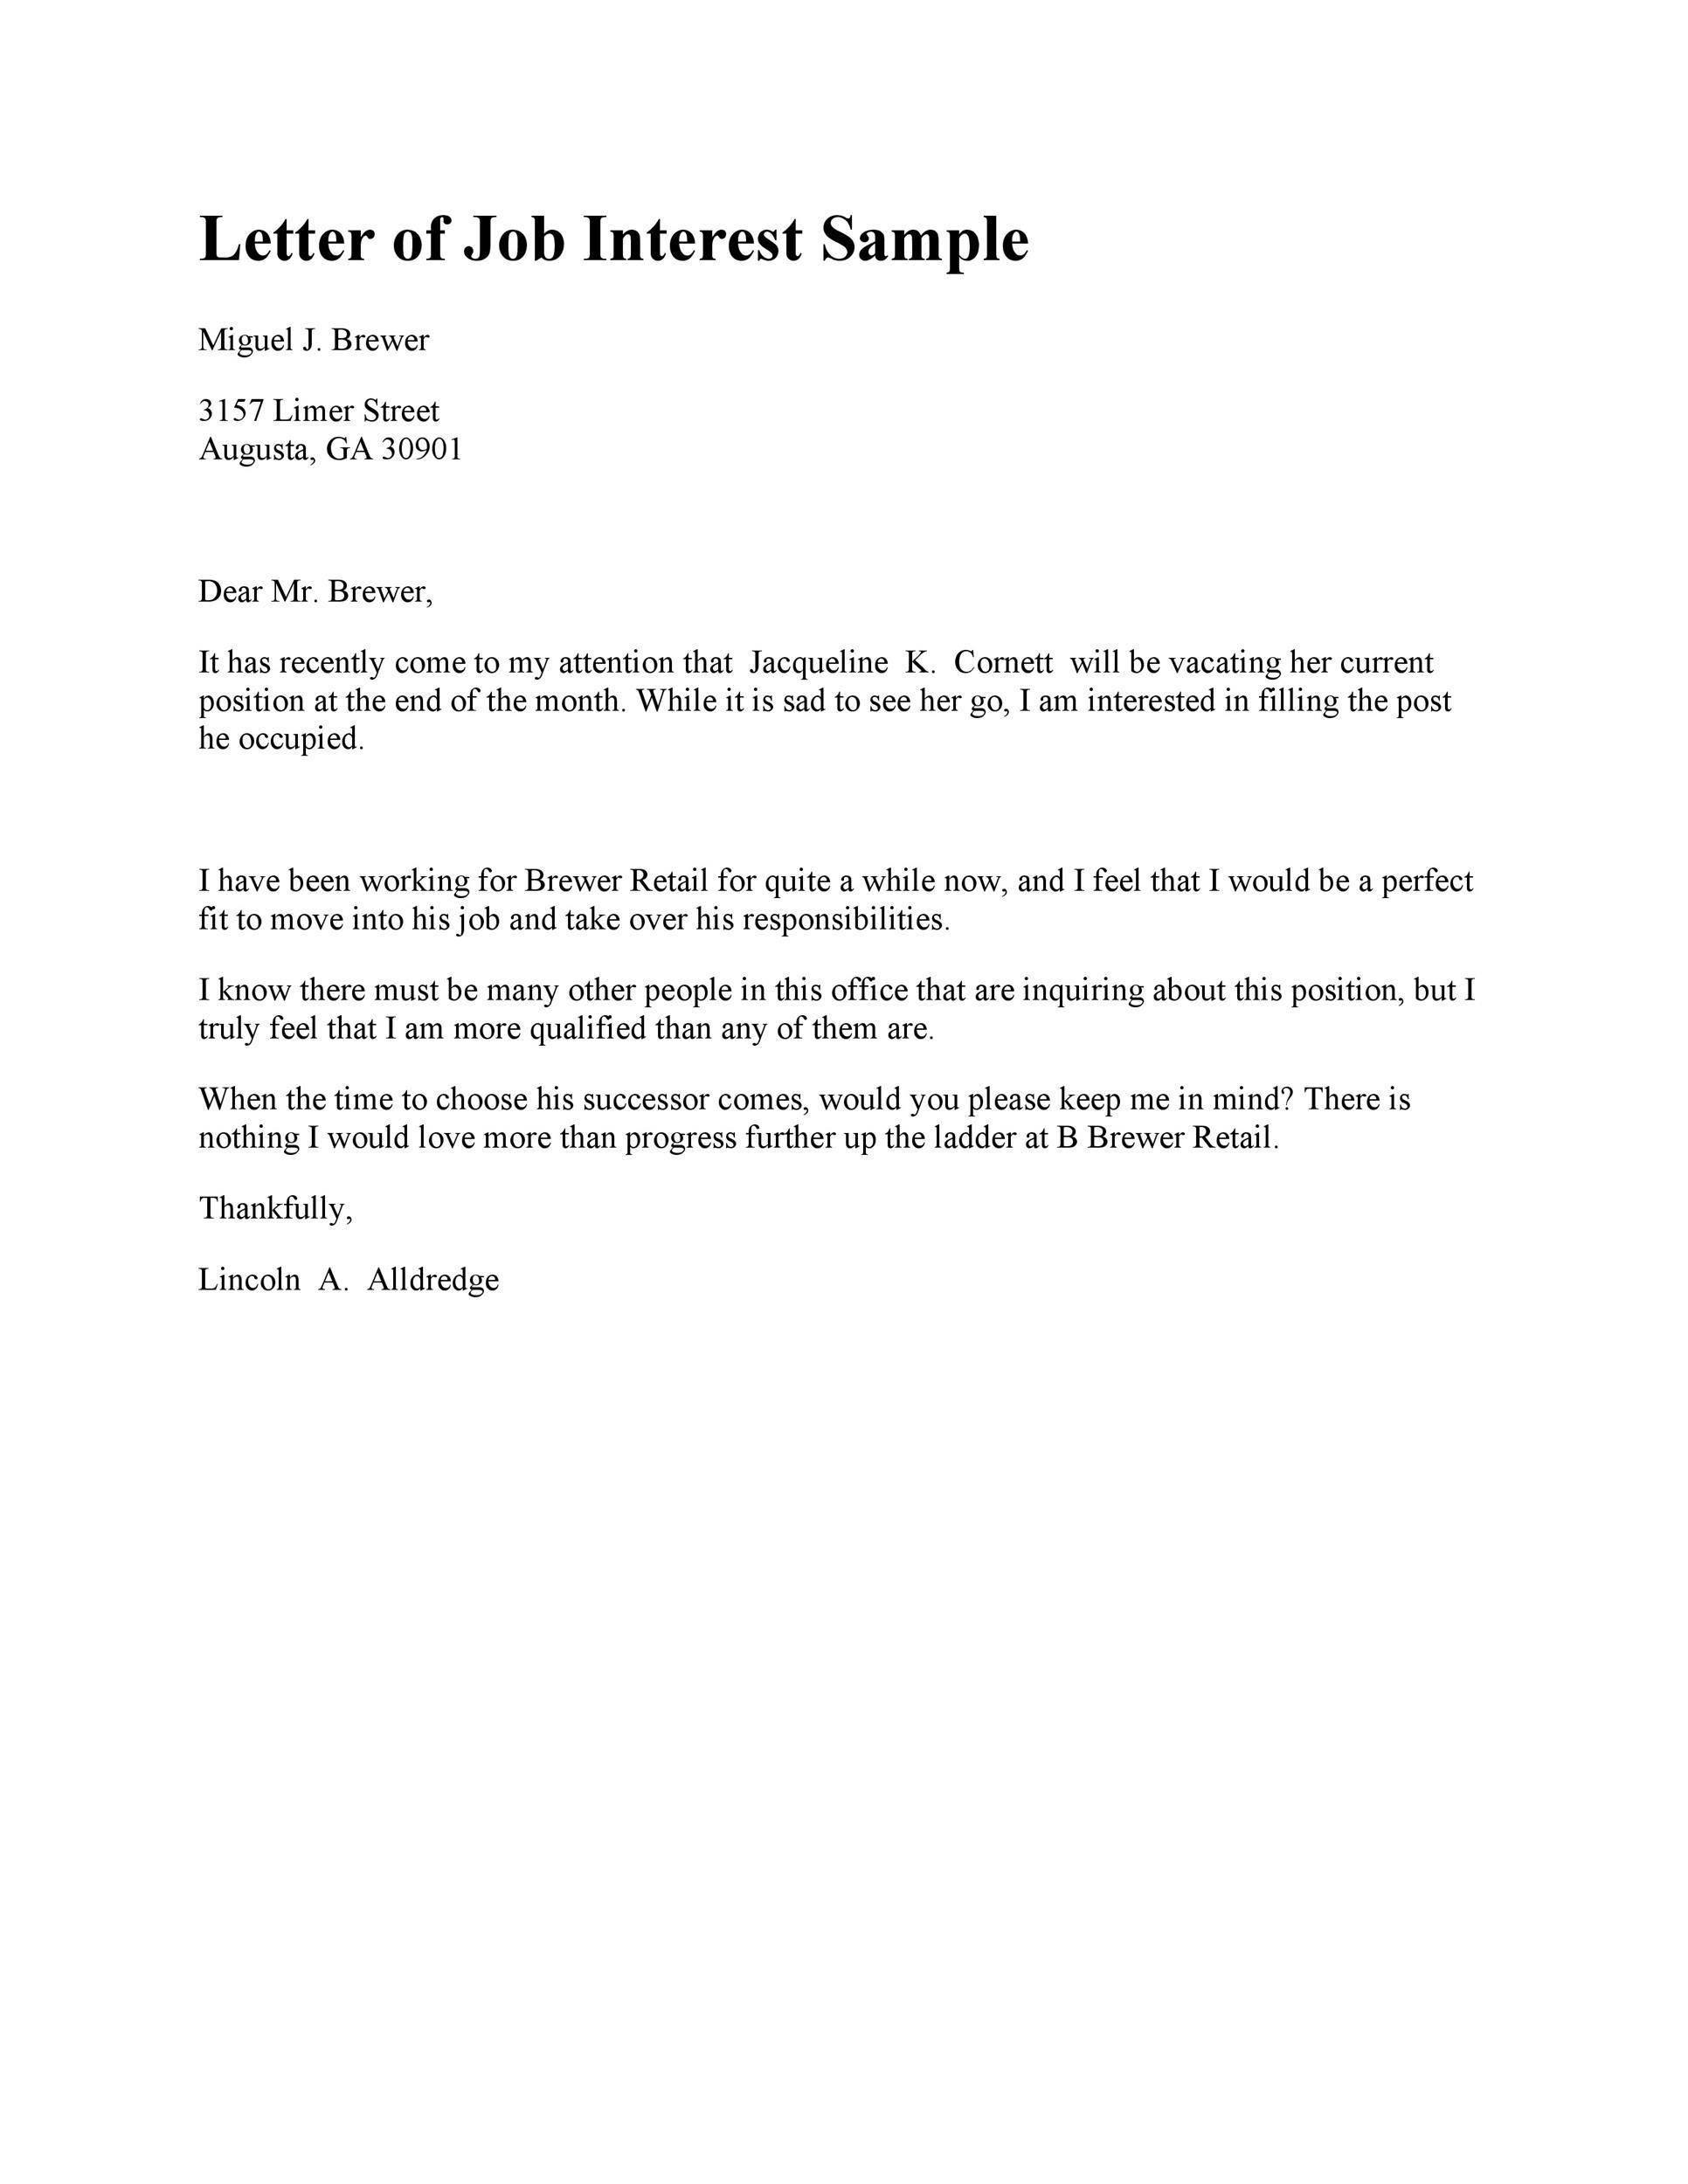 How To Write A Letter For Proof Of Employment With Sample 30 Amazing Letter Of Interest Samples And Templates